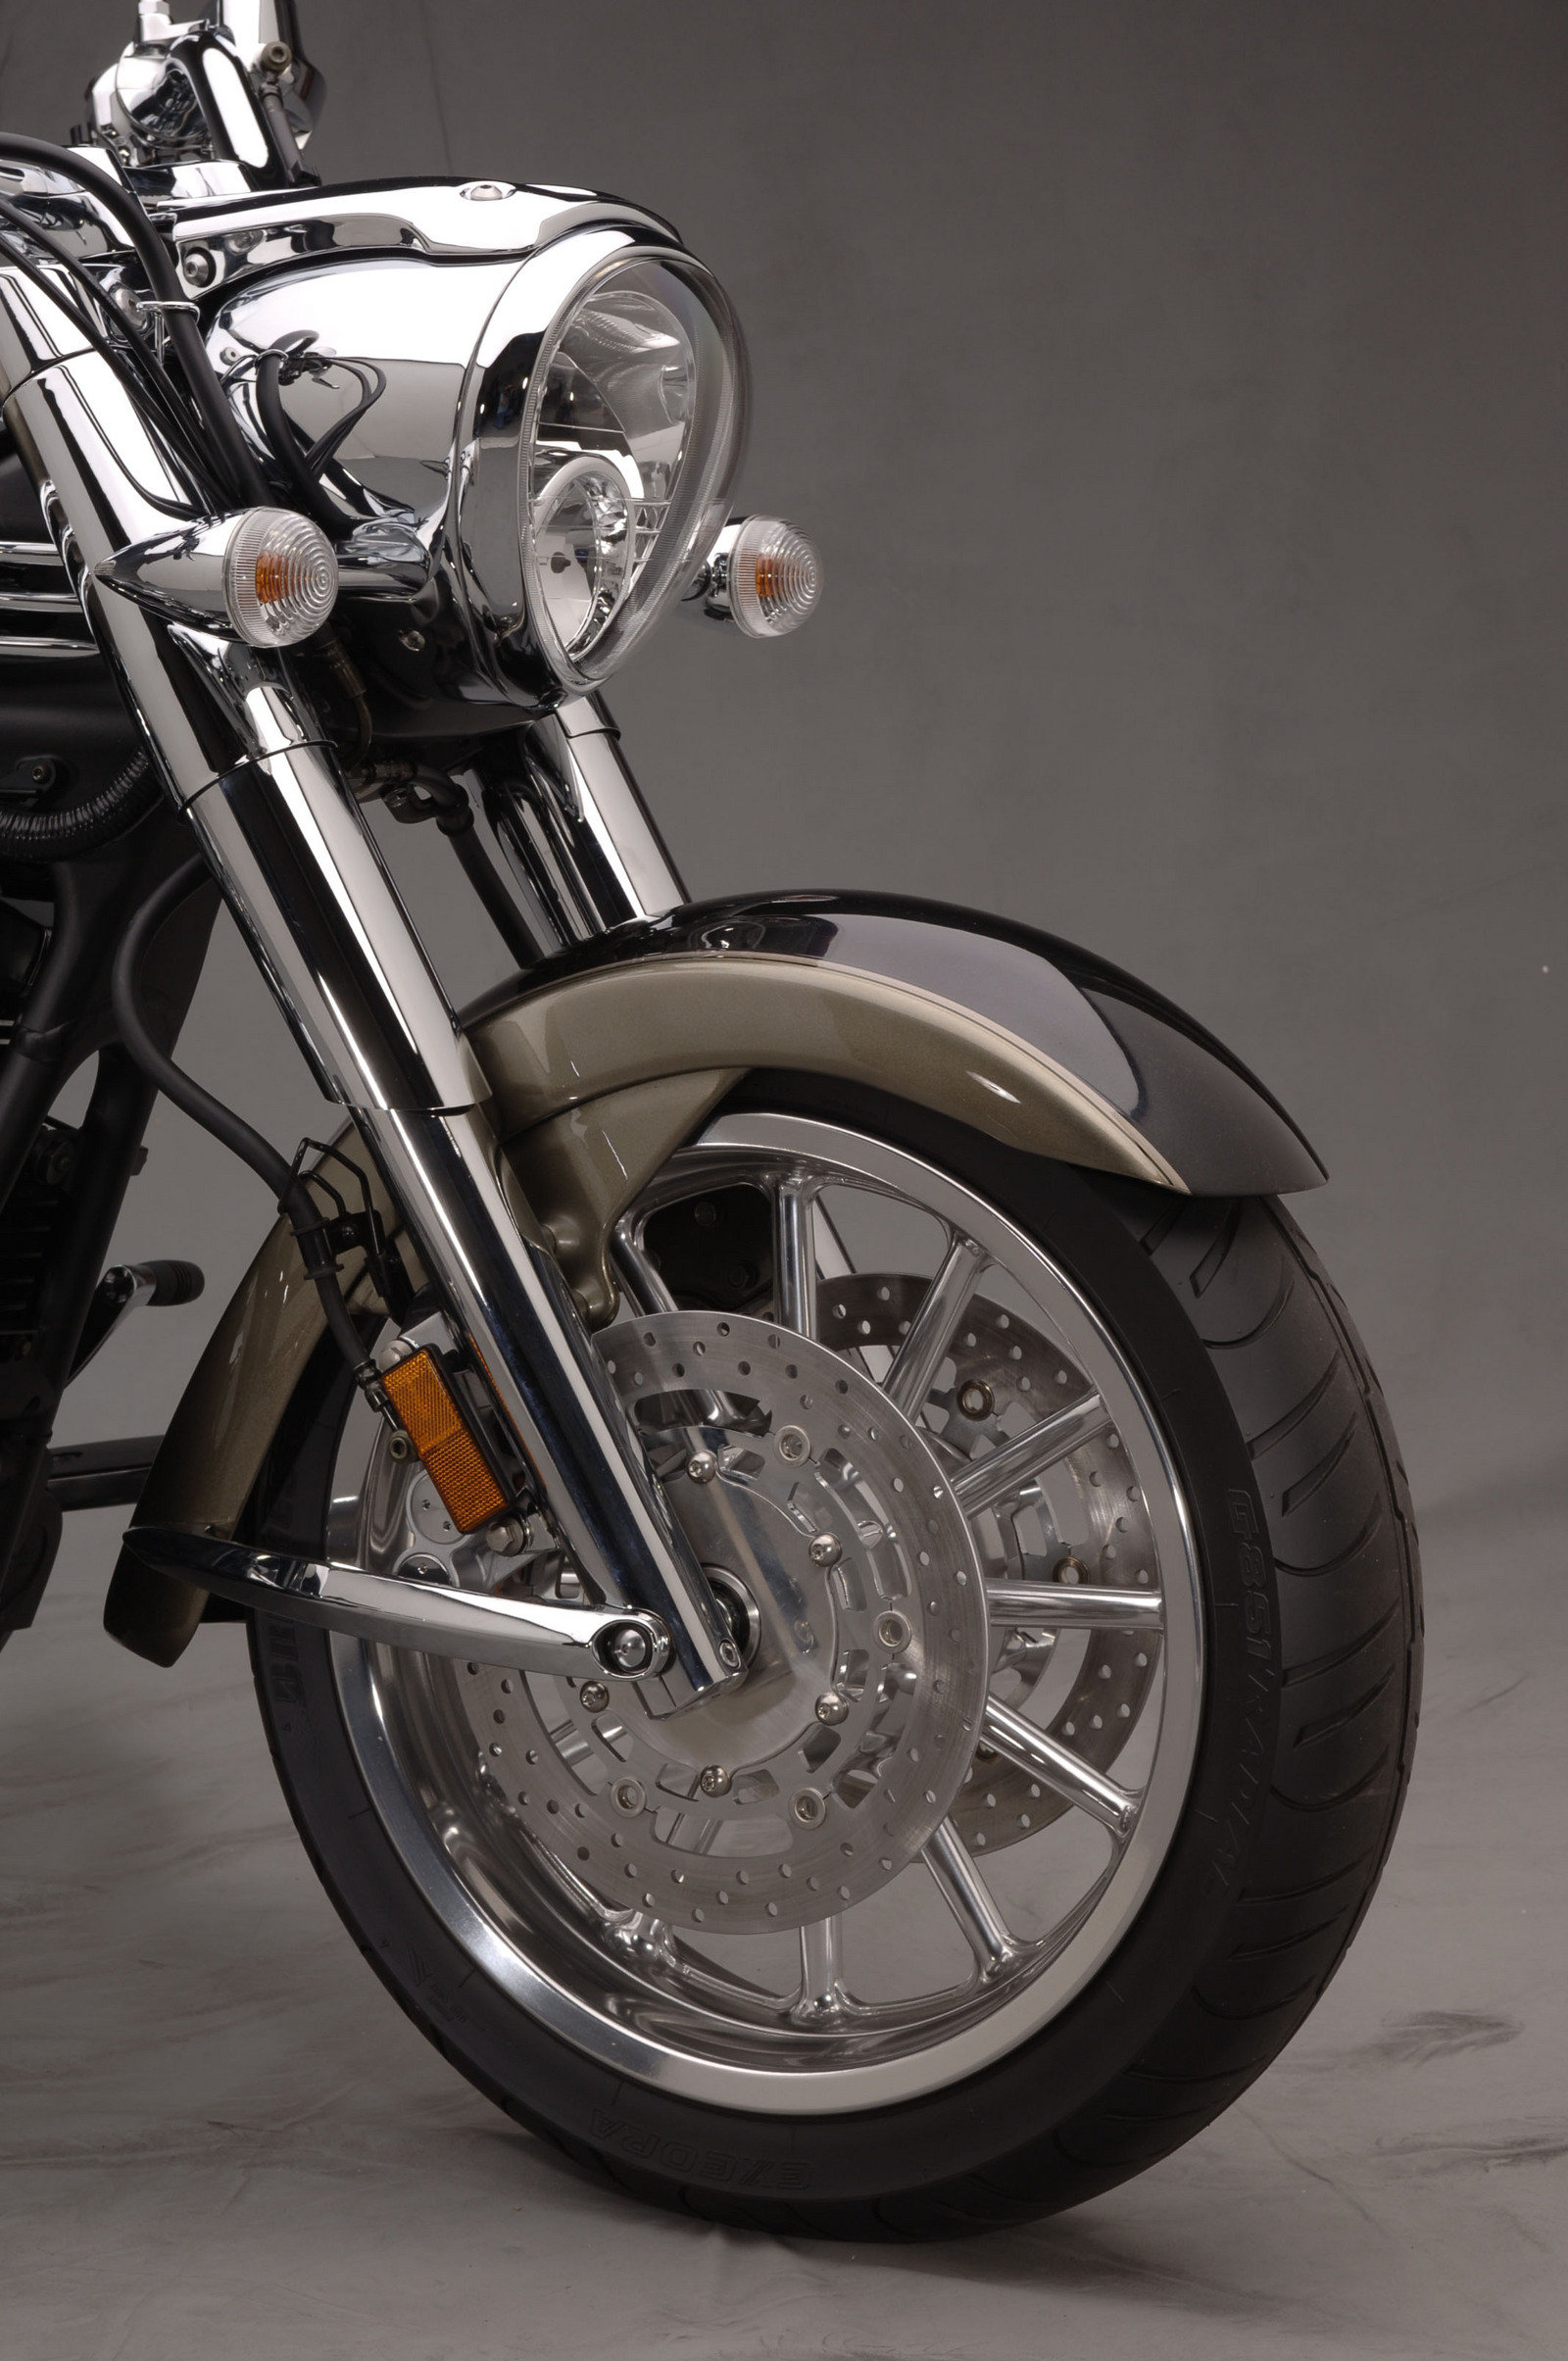 2006 yamaha roadliner s picture 46314 motorcycle for 2006 yamaha stratoliner review